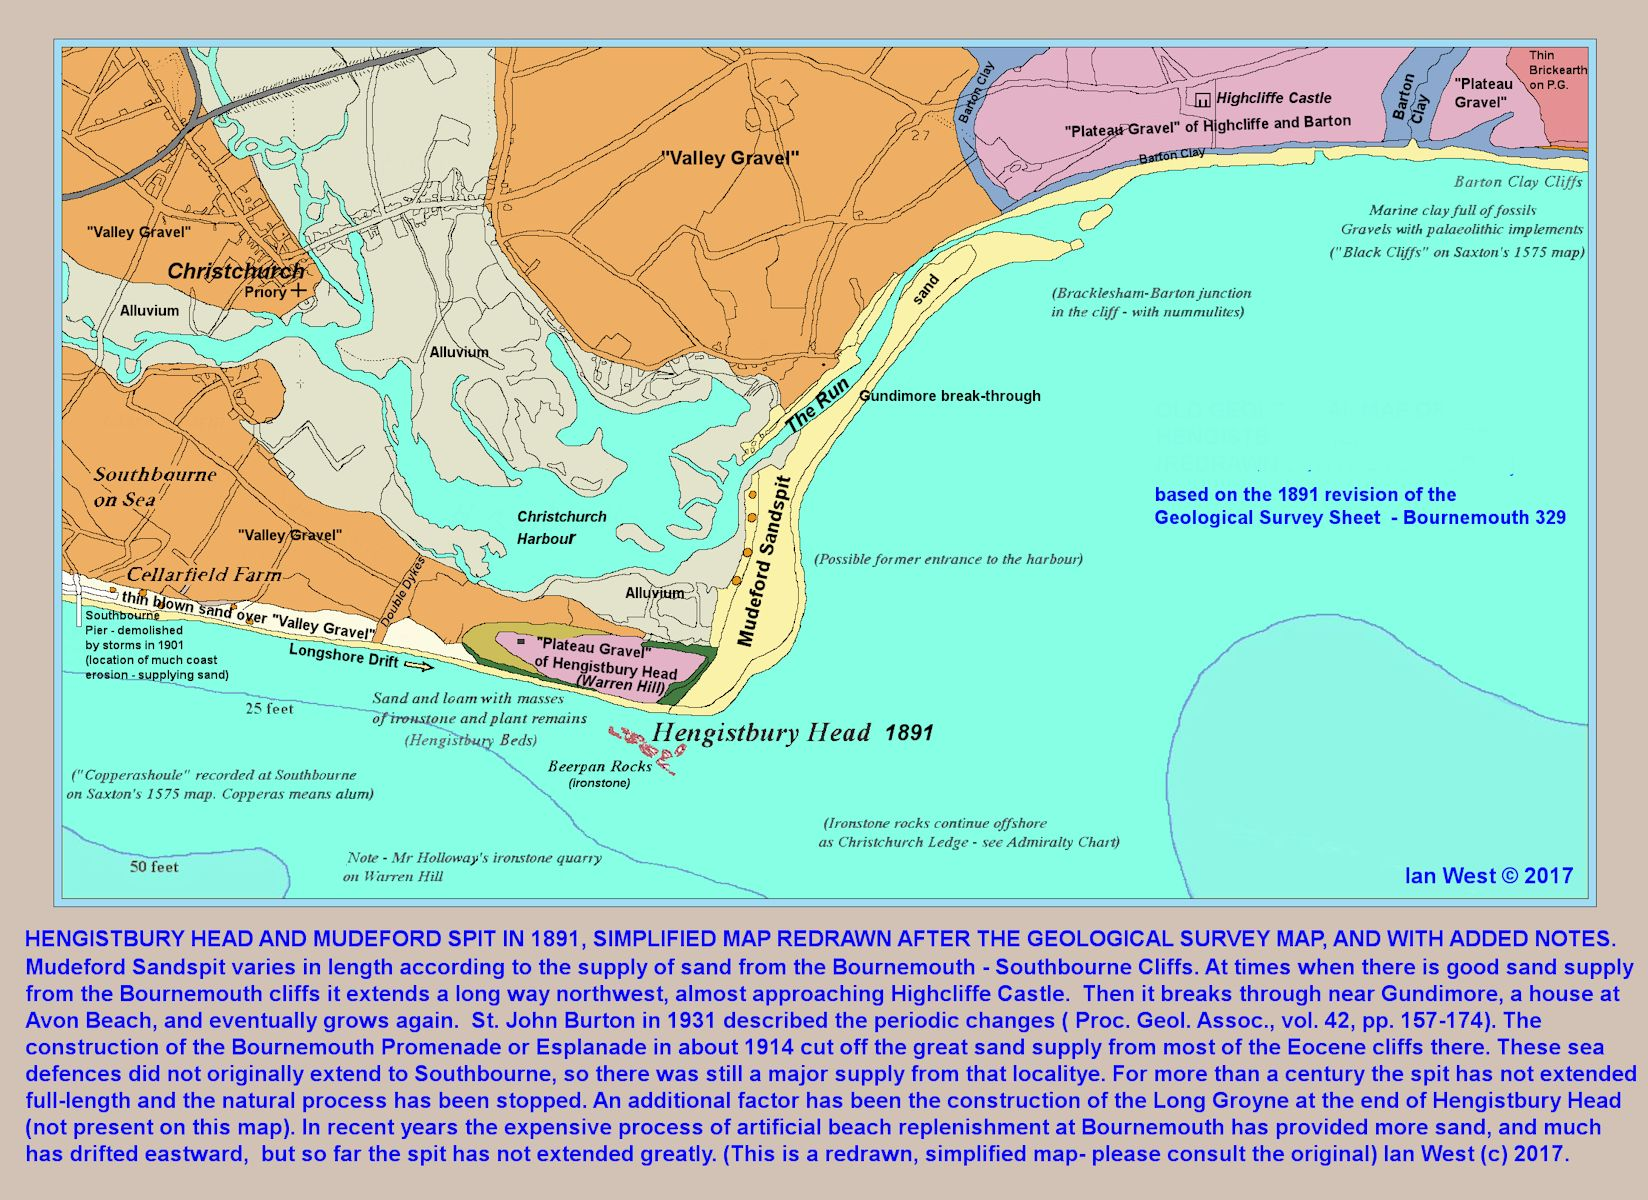 A redrawn copy of part of the 1891 geological map of Bournemouth showing Hengistbury Head at that date, and the long extension of Mudeford Spit together with the long channel or Run